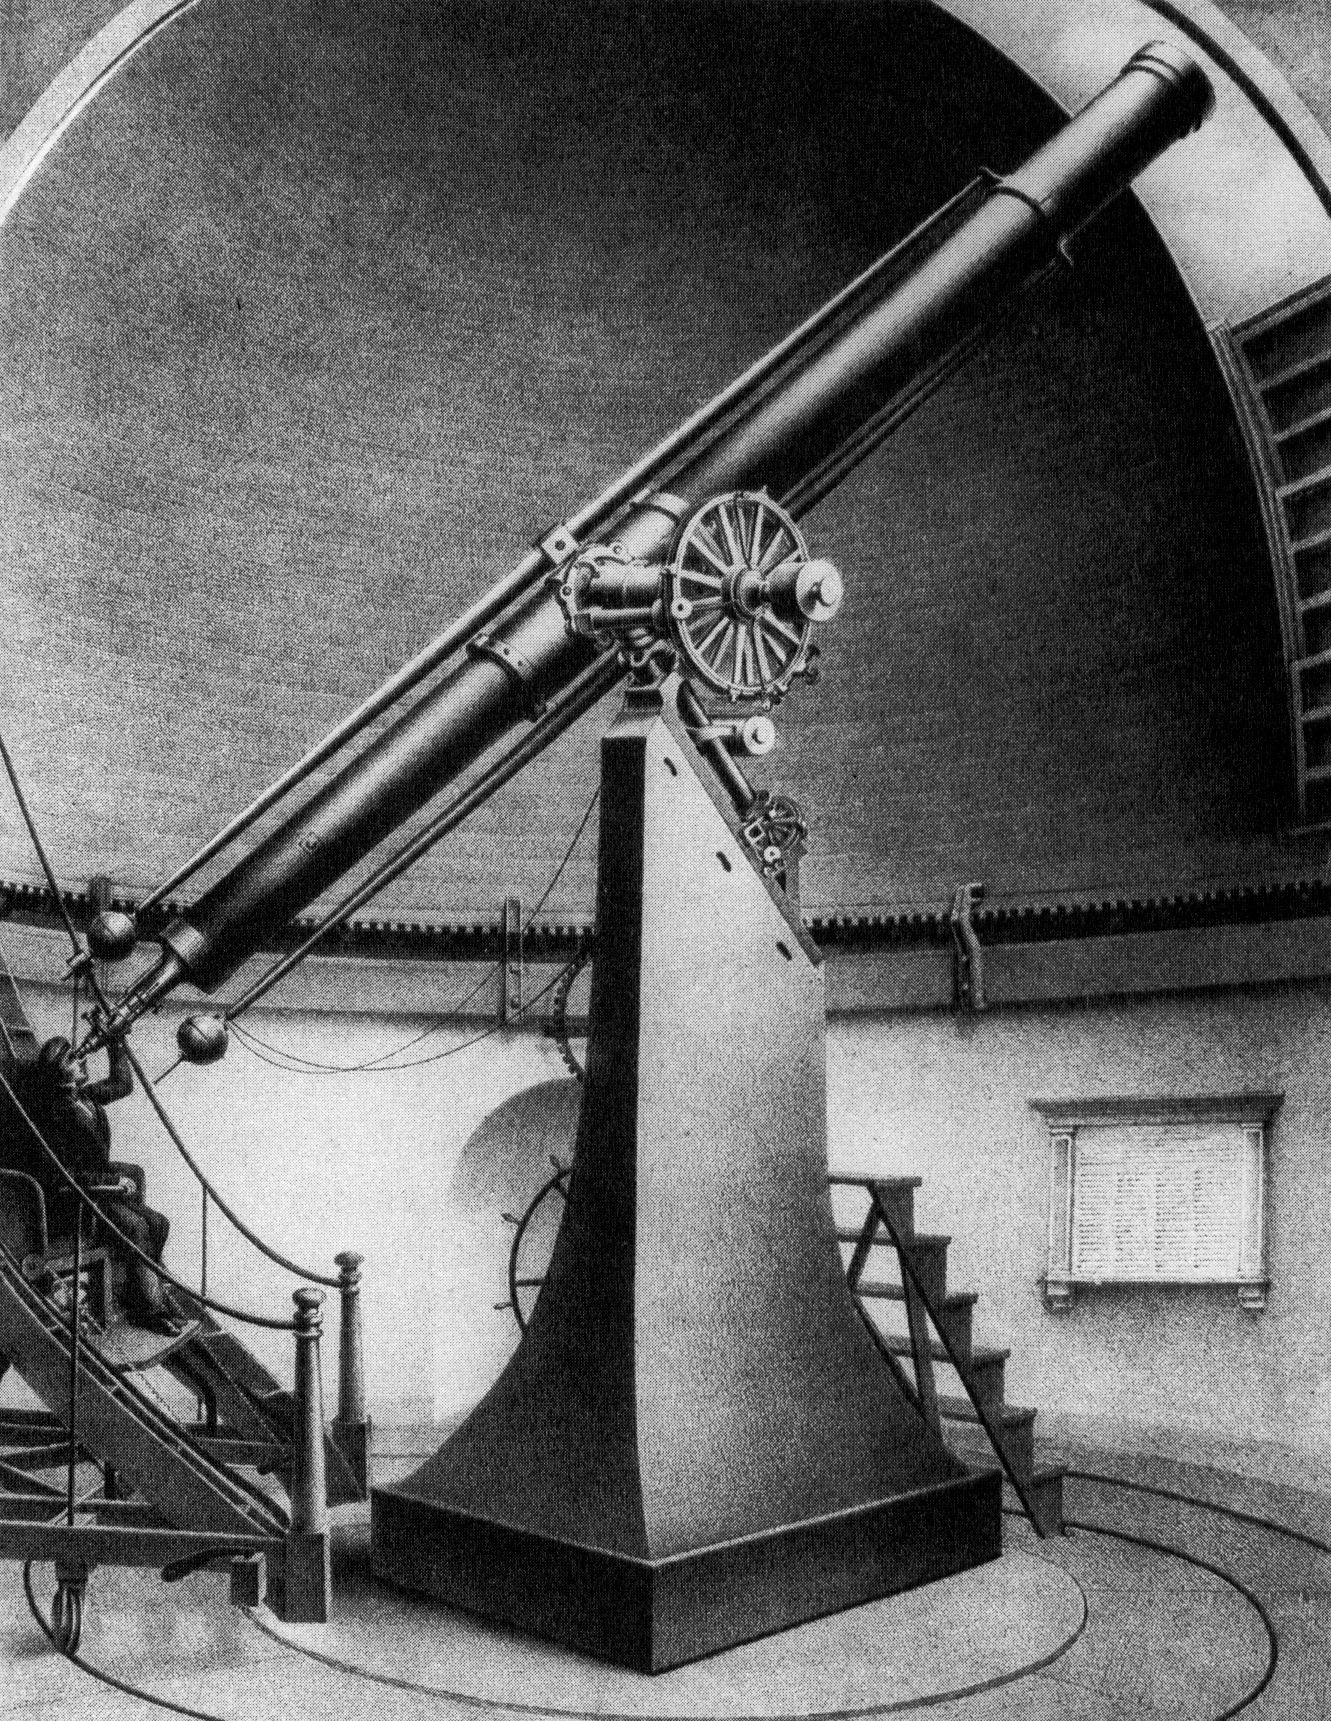 Sketch of the 15-inch Great Refractor telescope at Harvard College Observatory (Source: Harvard College Observatory. This is a faithful photographic reproduction of a two-dimensional, public domain work of art. The work of art itself is in the public domain because its copyright has expired).